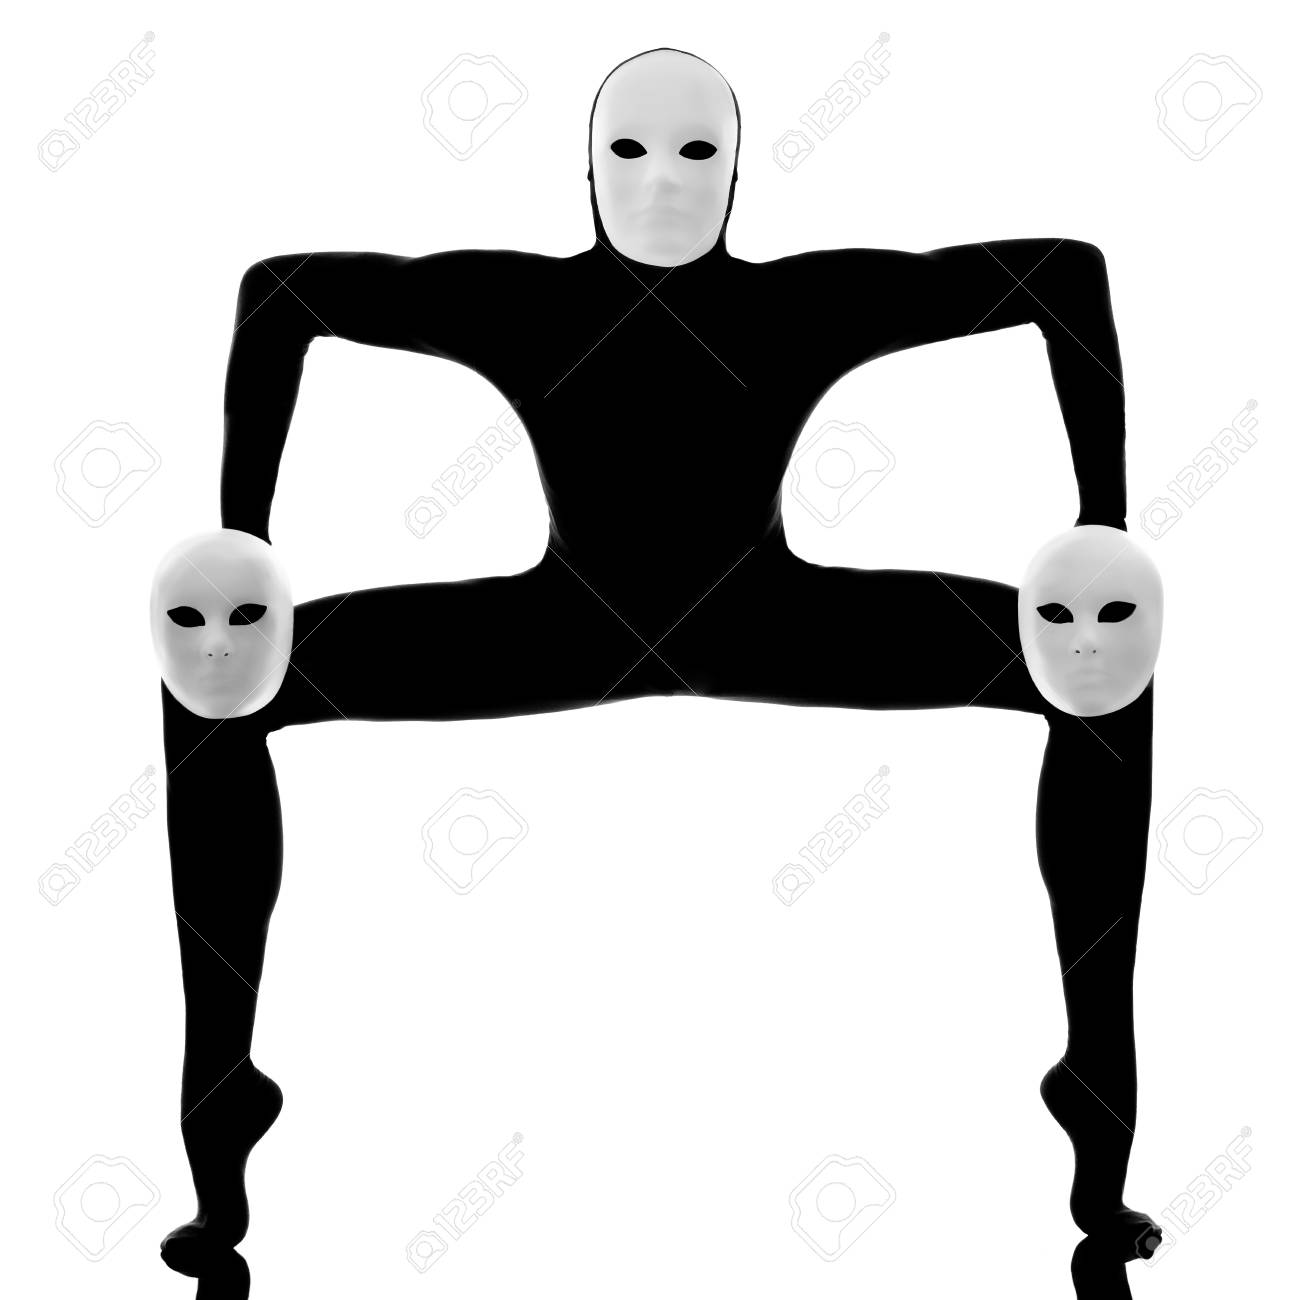 performer man mime with mask on studio isolated on white background Stock Photo - 13525324